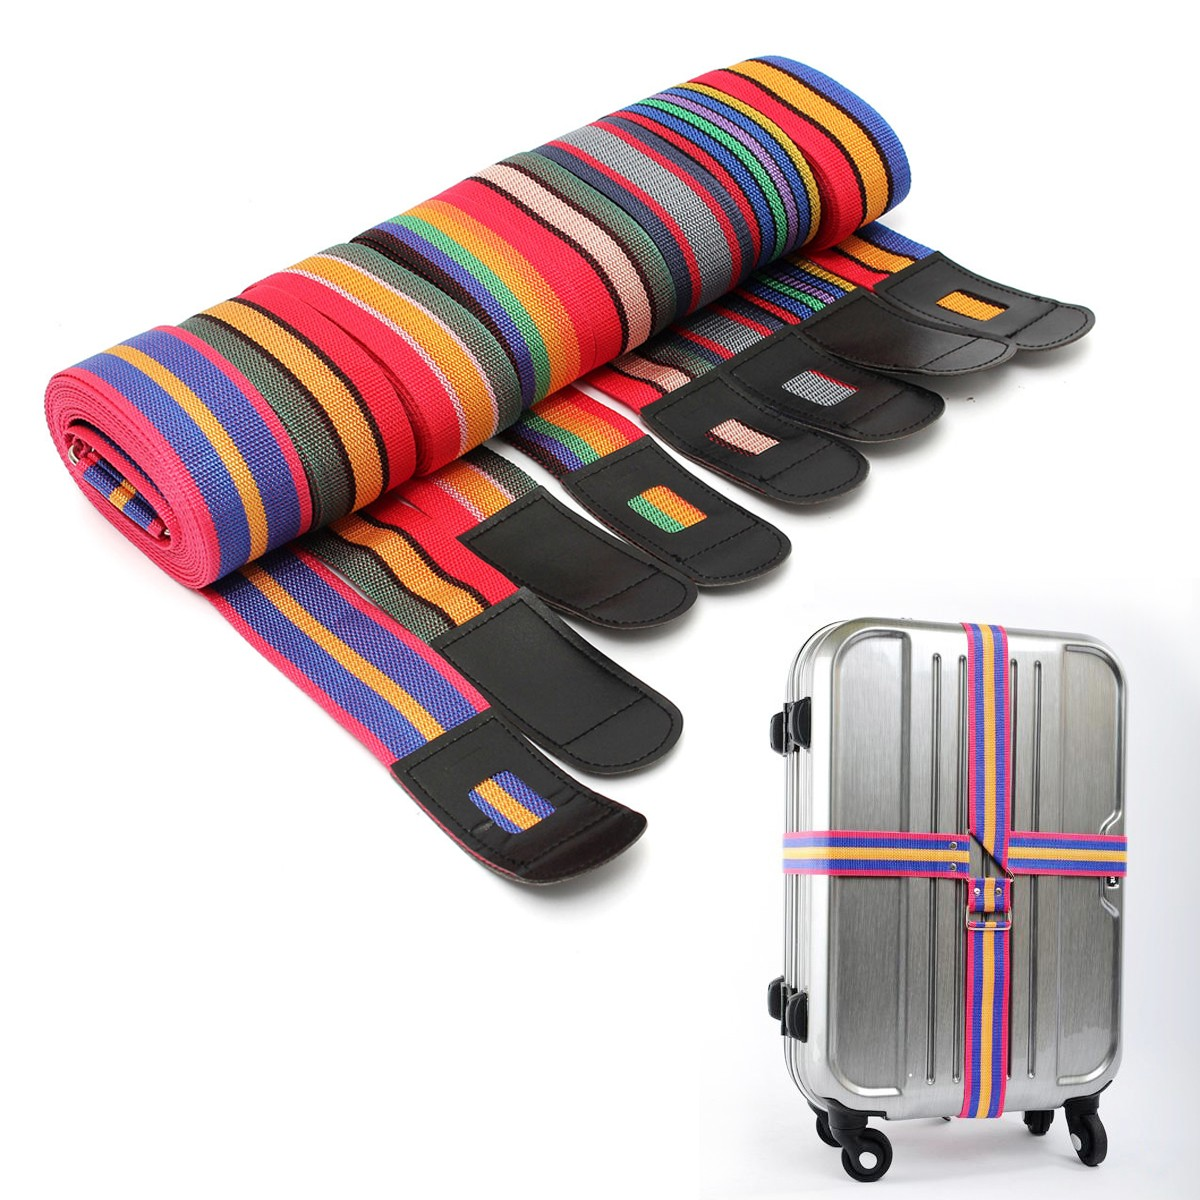 Adjustable Luggage Suitcase Cross Strap Travel Baggage Bag Belt Metal Clasp